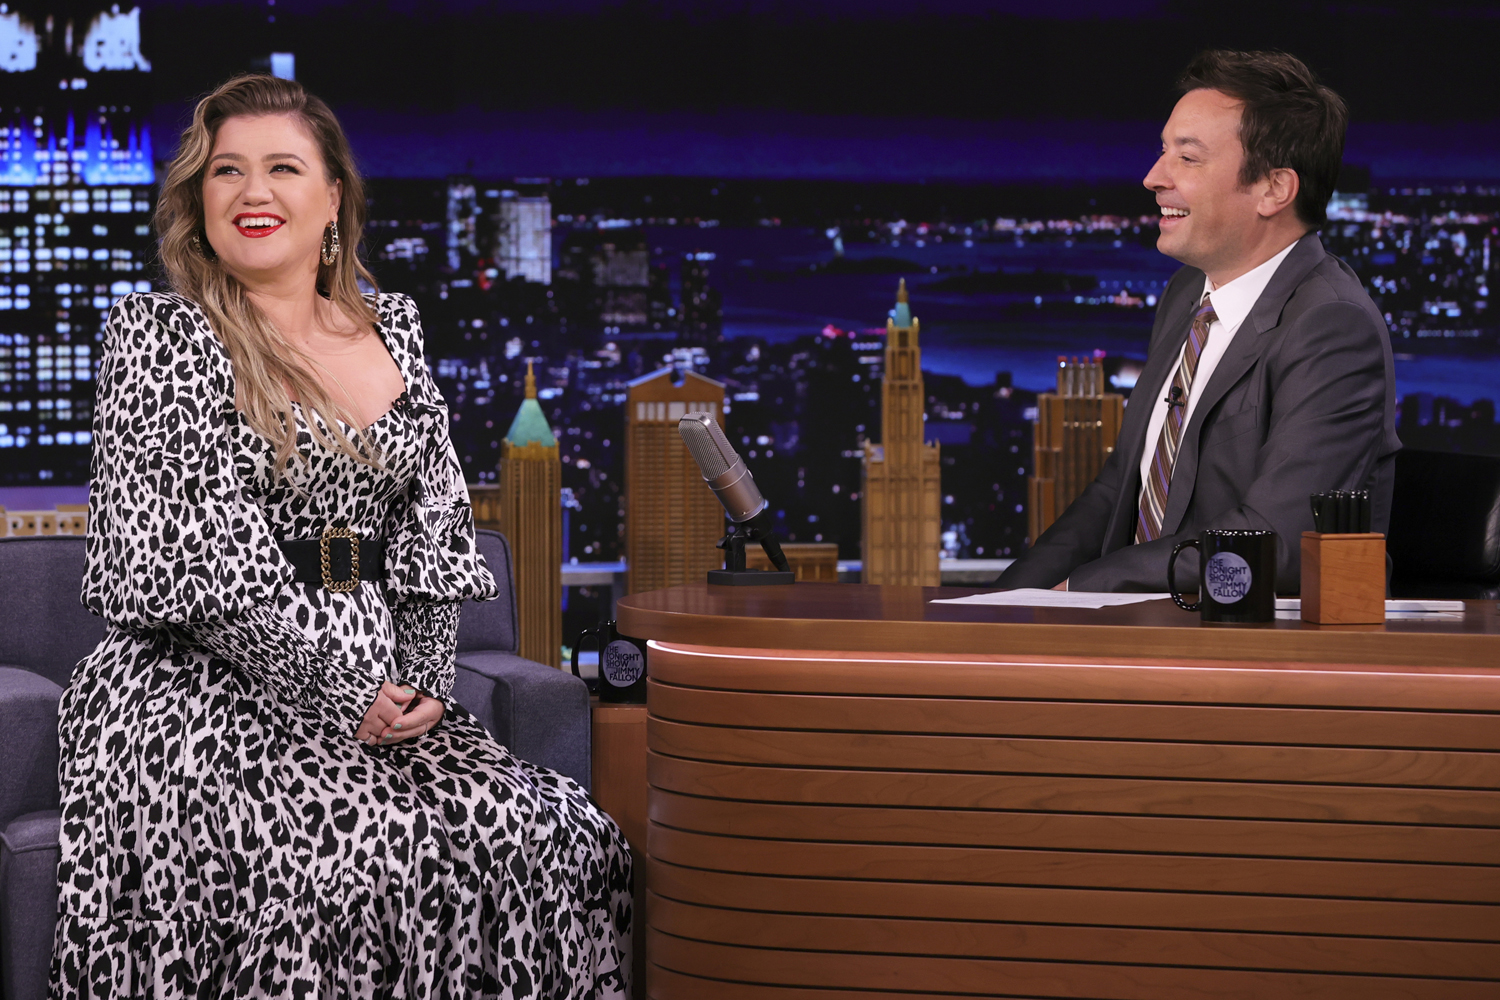 Kelly Clarkson during an interview on 'The Tonight Show Starring Jimmy Fallon'